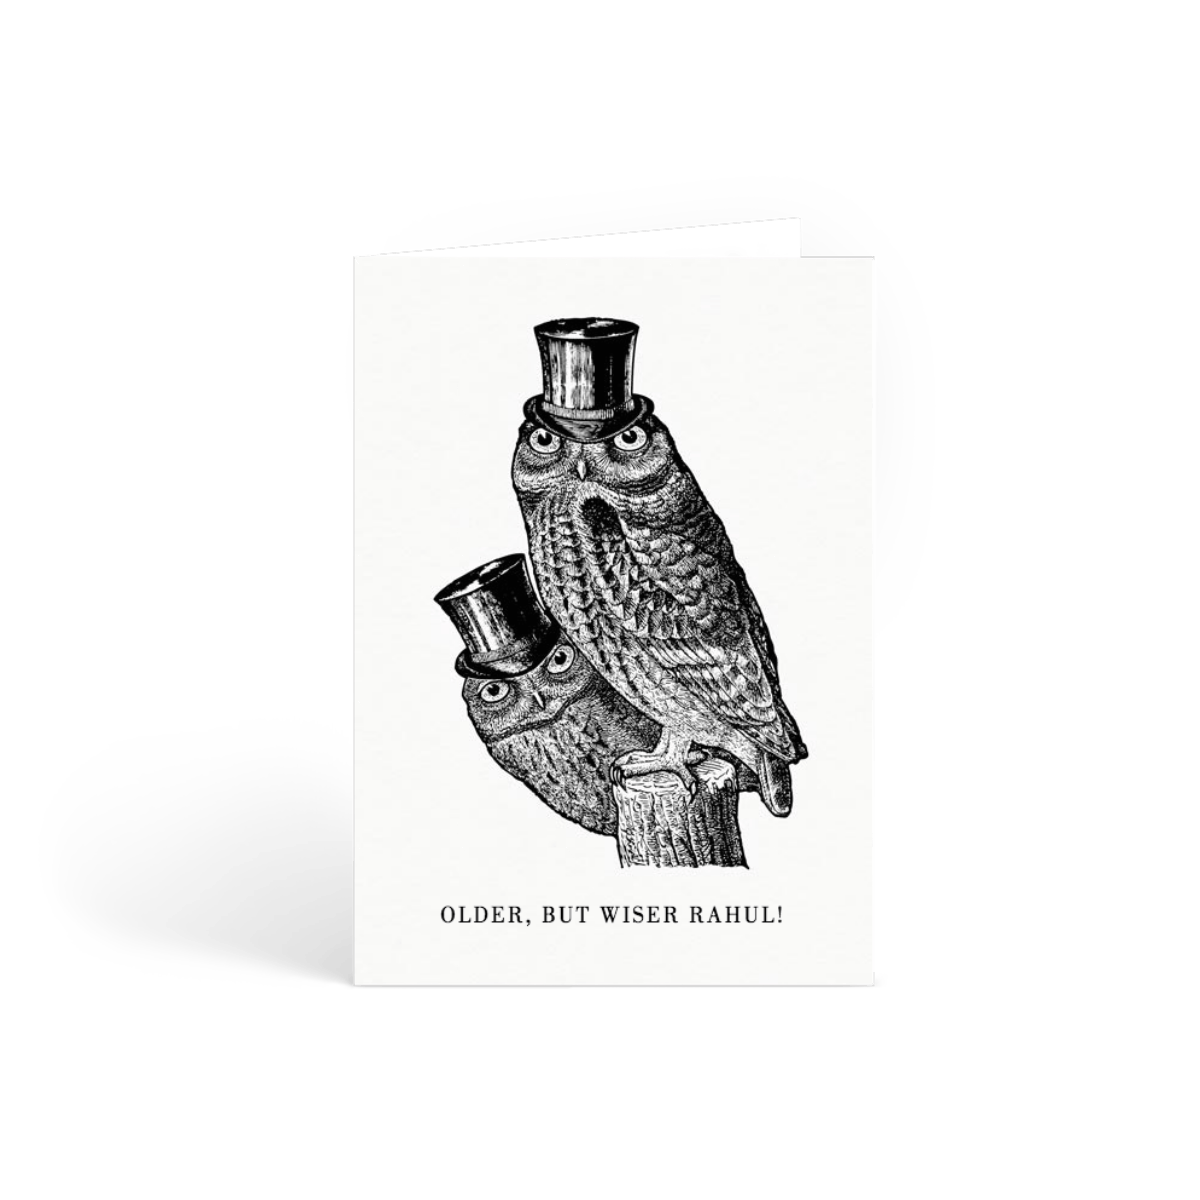 Https%3a%2f%2fwww.papier.com%2fproduct image%2f13024%2f2%2fsophisticated owls 3285 avant 1542383945.png?ixlib=rb 1.1